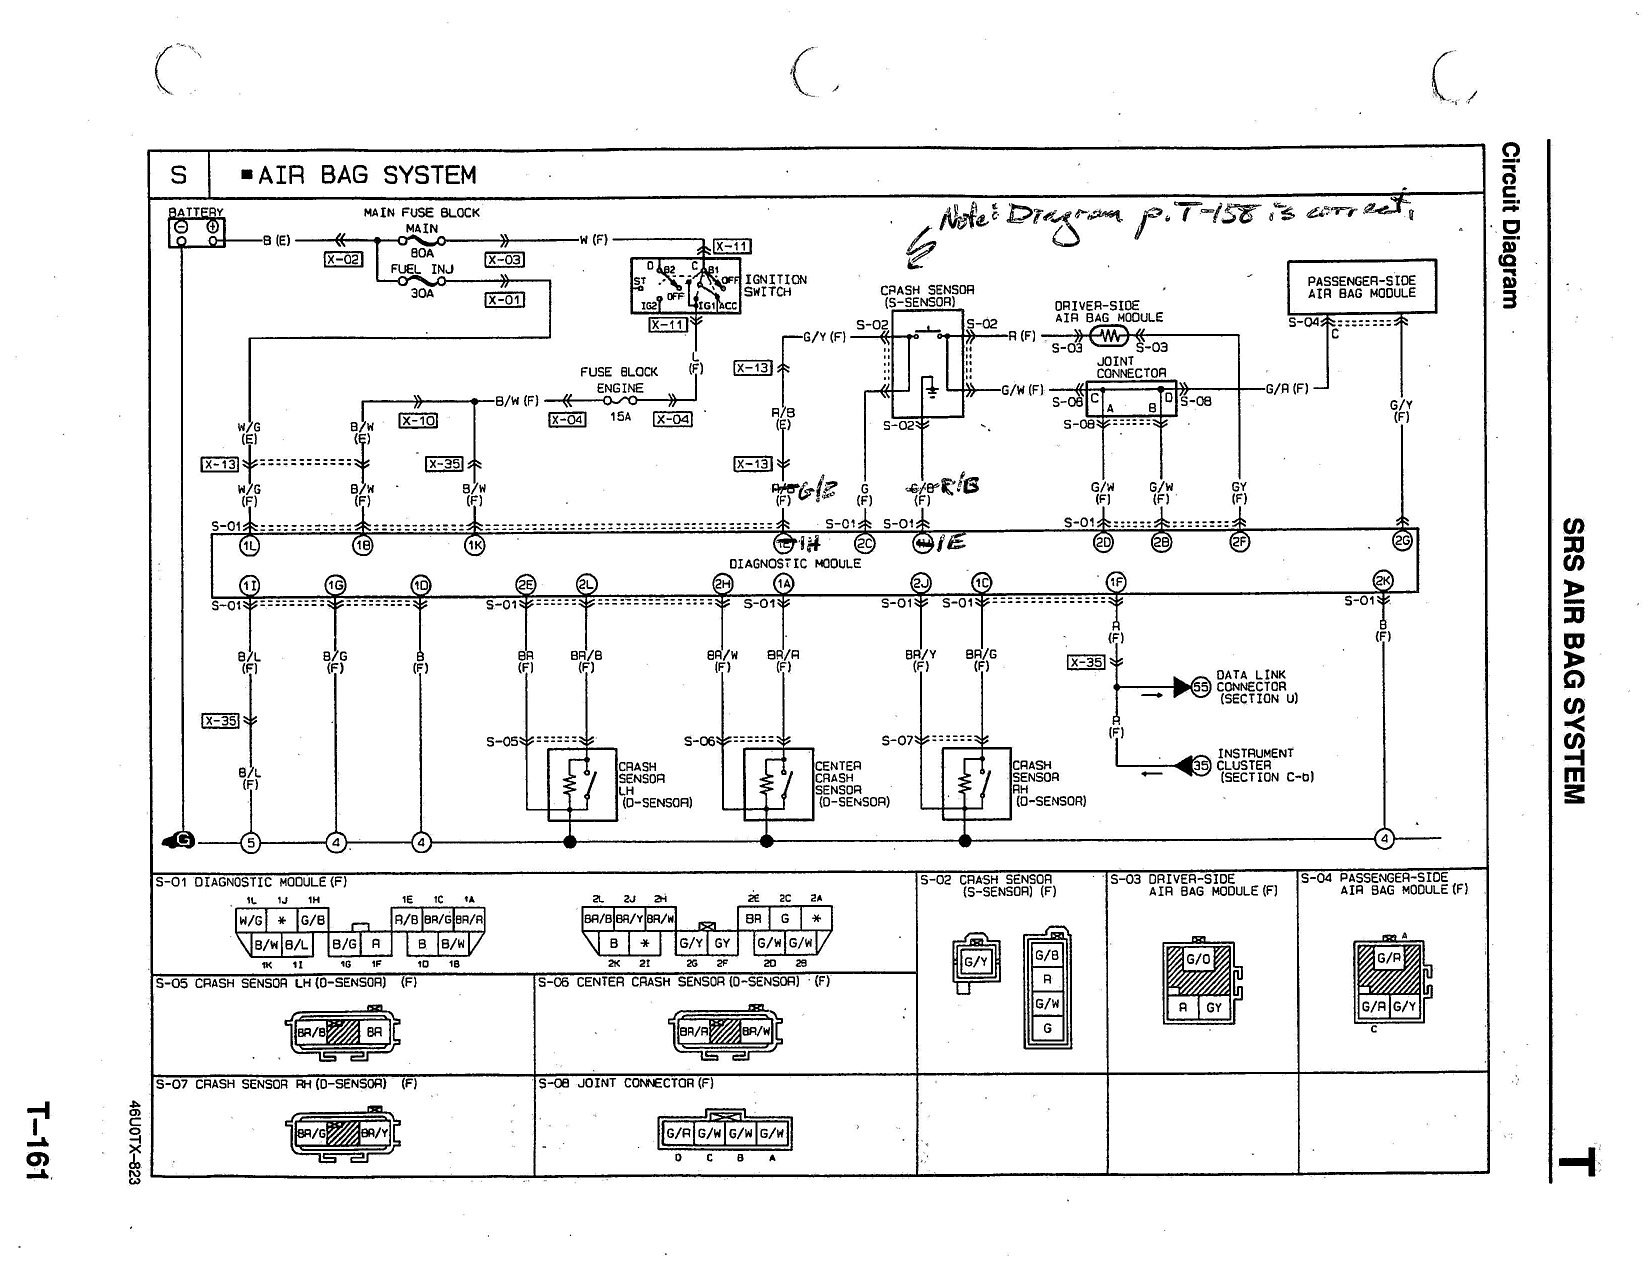 Wiring Ladder Diagram also Wiring 220 Volt Welder in addition Central Lighting Inverter Wiring Diagram in addition Defrost Control Board Wiring Diagram together with Honeywell Limit Switch Diagram. on us6606871